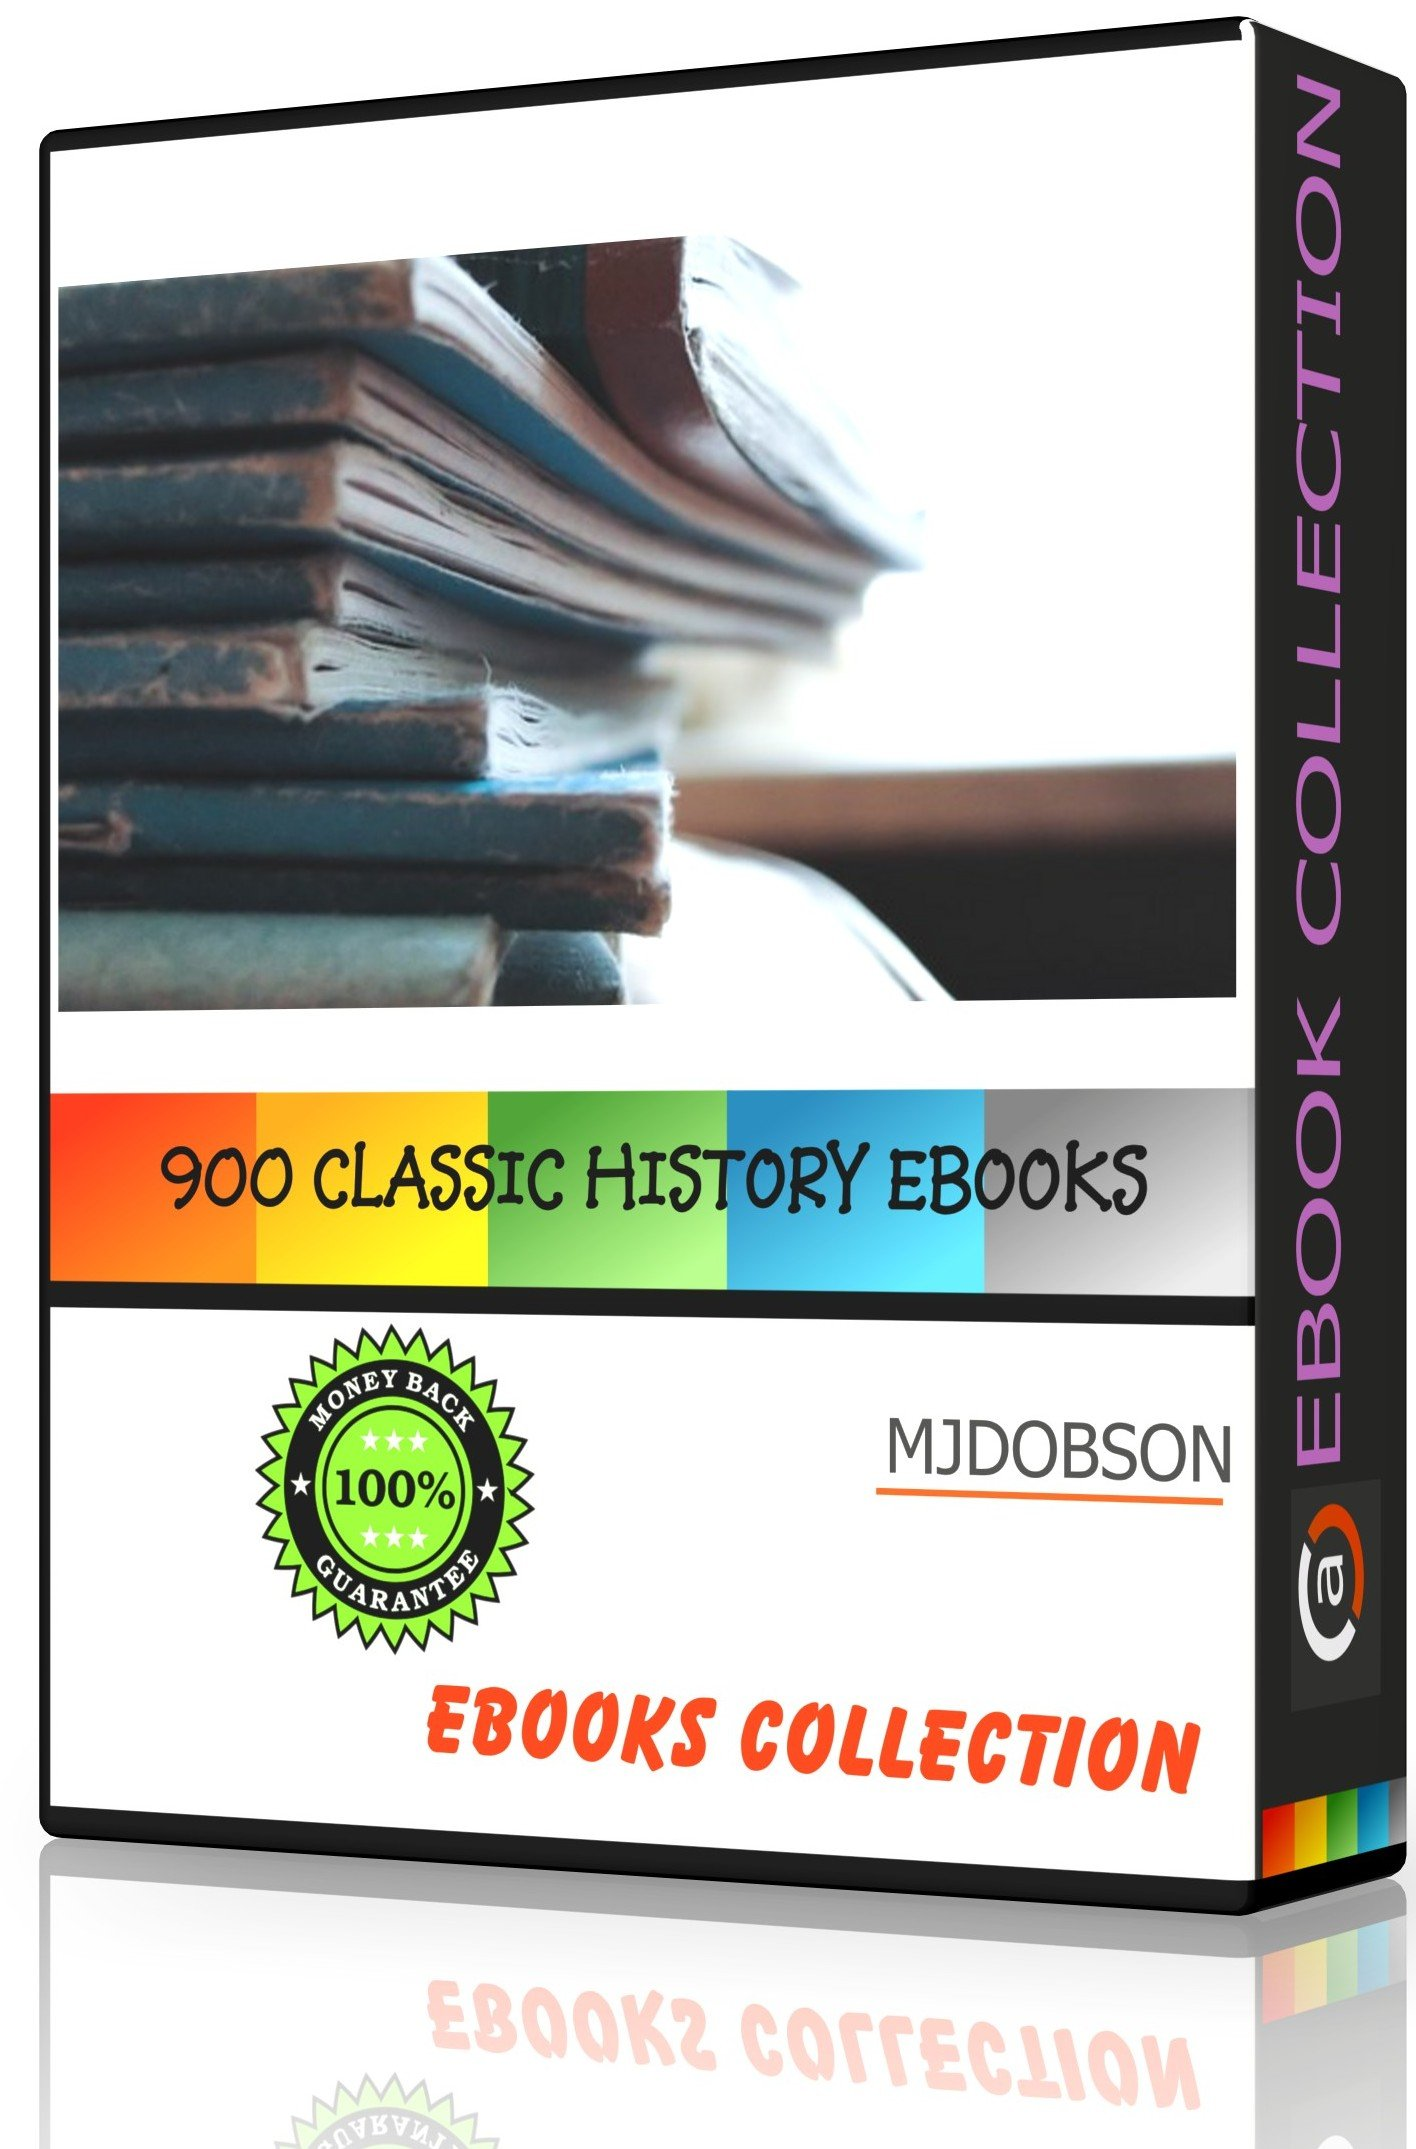 History ebooks for kindle sony readers etc on dvdmd98 900 history ebooks for kindle sony readers etc on dvdmd98 900 classic fandeluxe Ebook collections